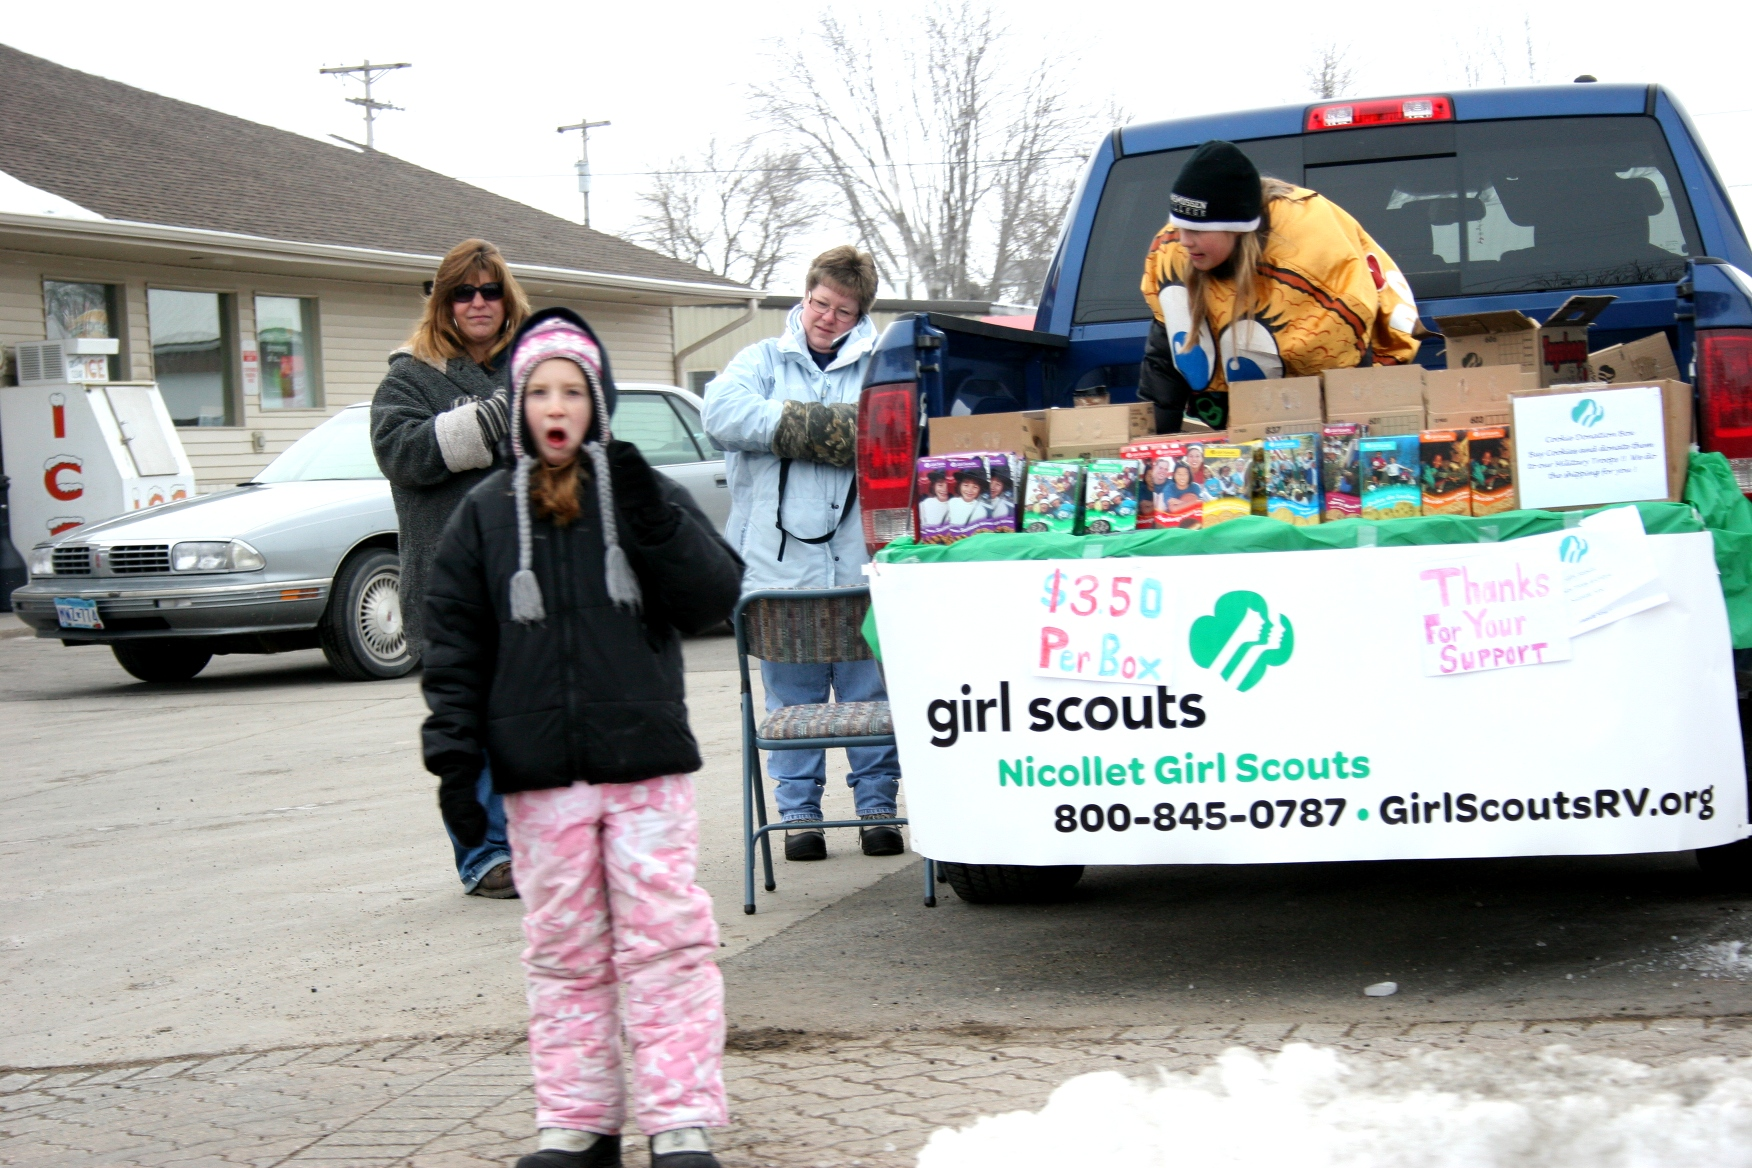 minnesota prairie roots girl scouts just keep getting